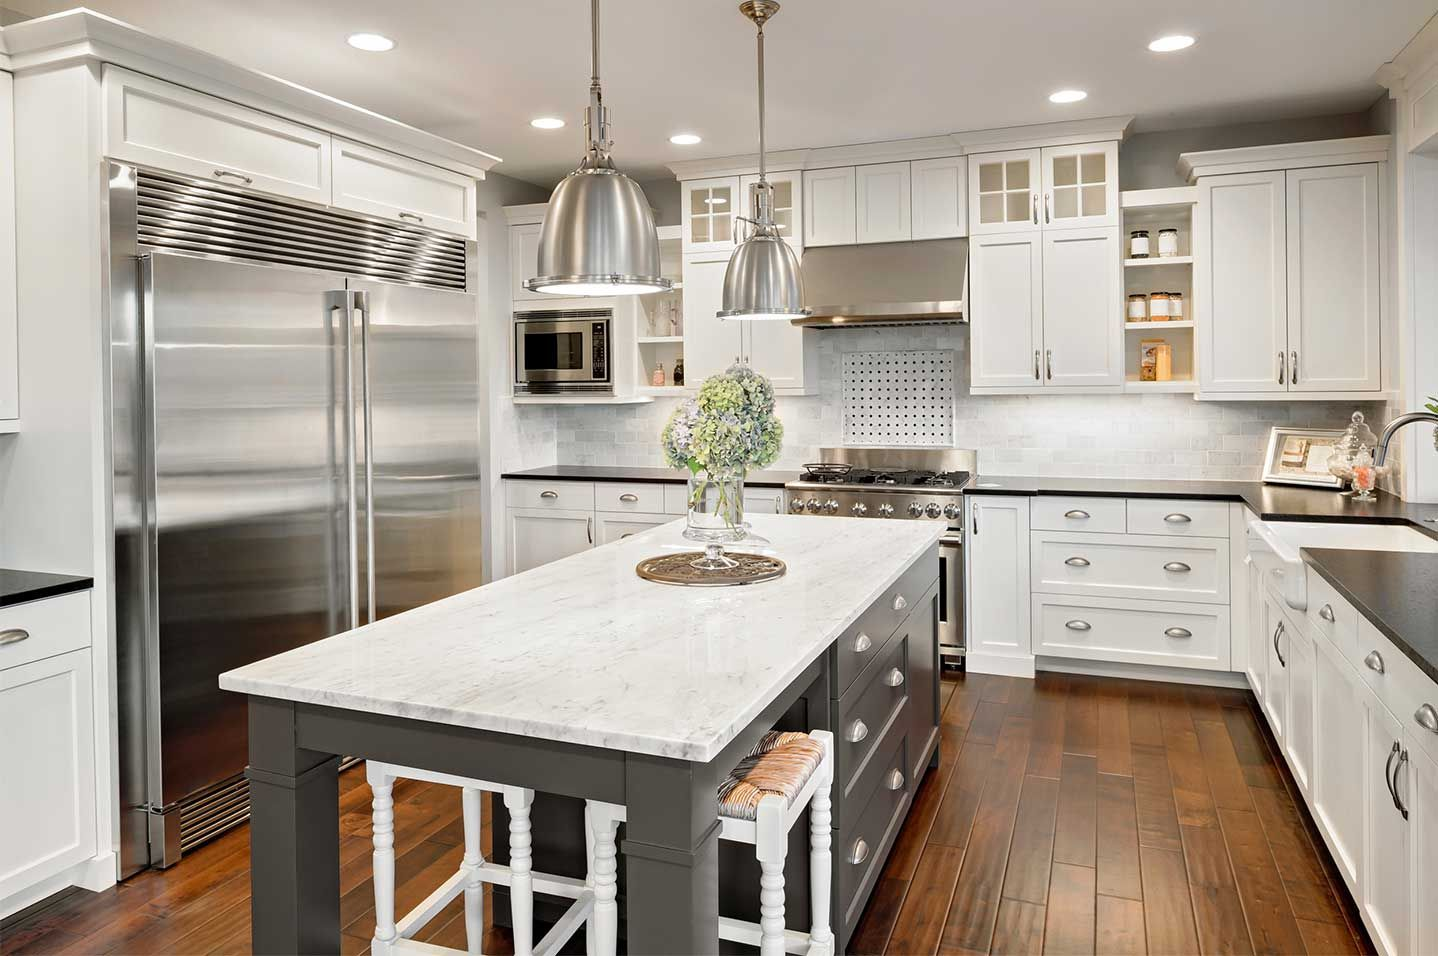 graniteselection kitchen granite countertops Check out our Projects